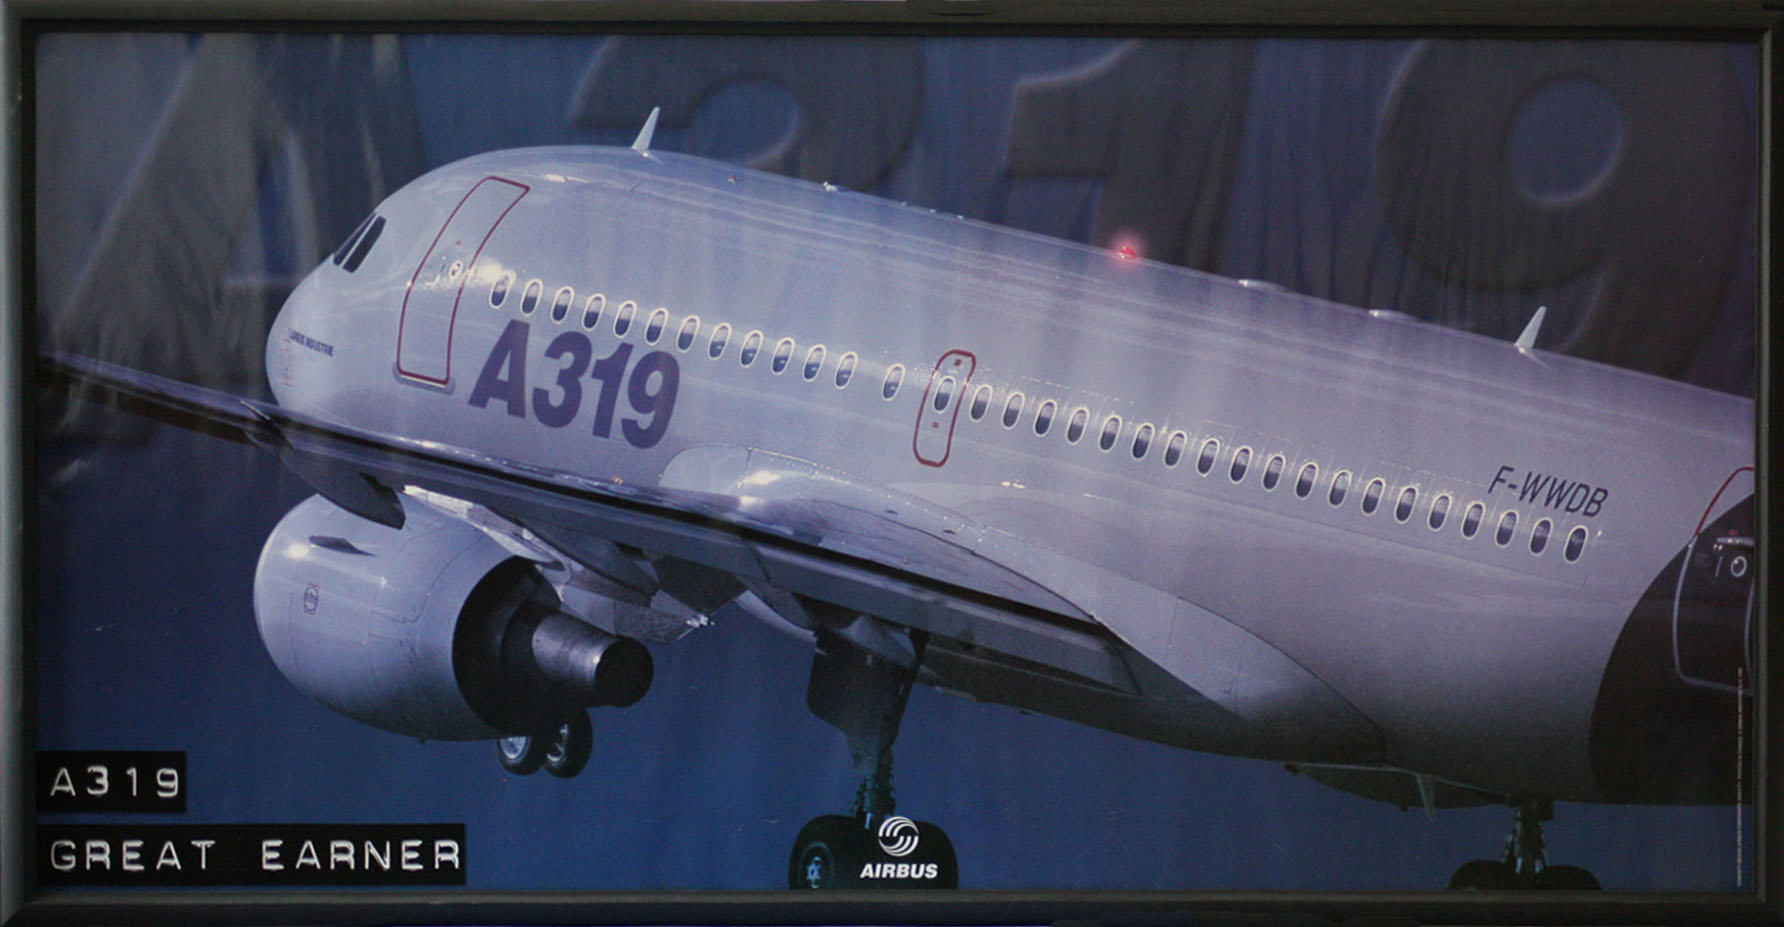 Airbus A319